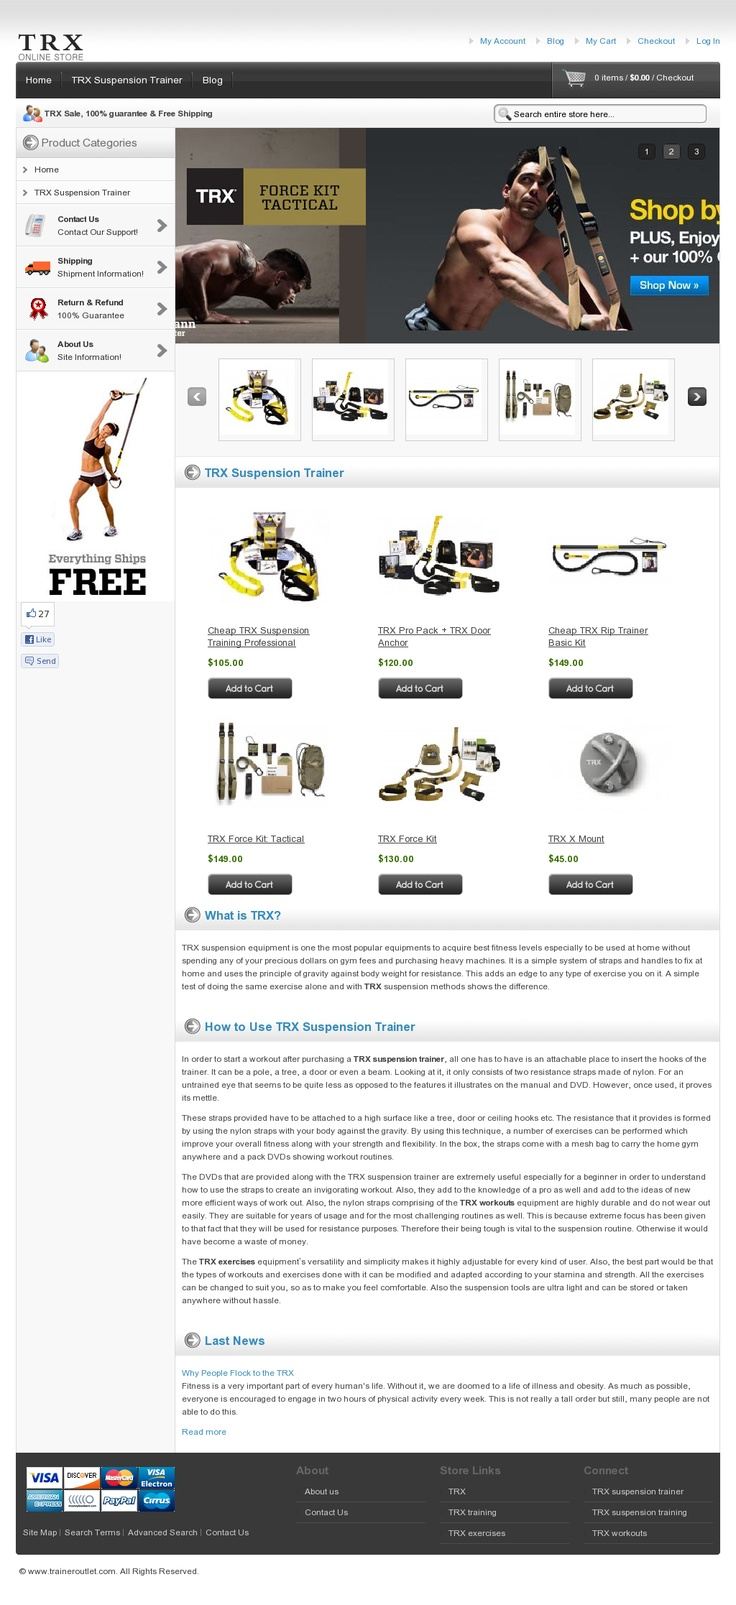 The users are very much satisfied and enjoying the physical development using the TRX workout equipments. The TRX system is utilized by all sorts of people who are very much caring for their physical fitness. The range of our customers starts from normal people to physically hard working army men. The TRX satisfies all of them by providing varieties of workouts suitable for them >> TRX, TRX workouts, TRX exercises, TRX suspension trainer, TRX sale --> www.traineroutlet.com